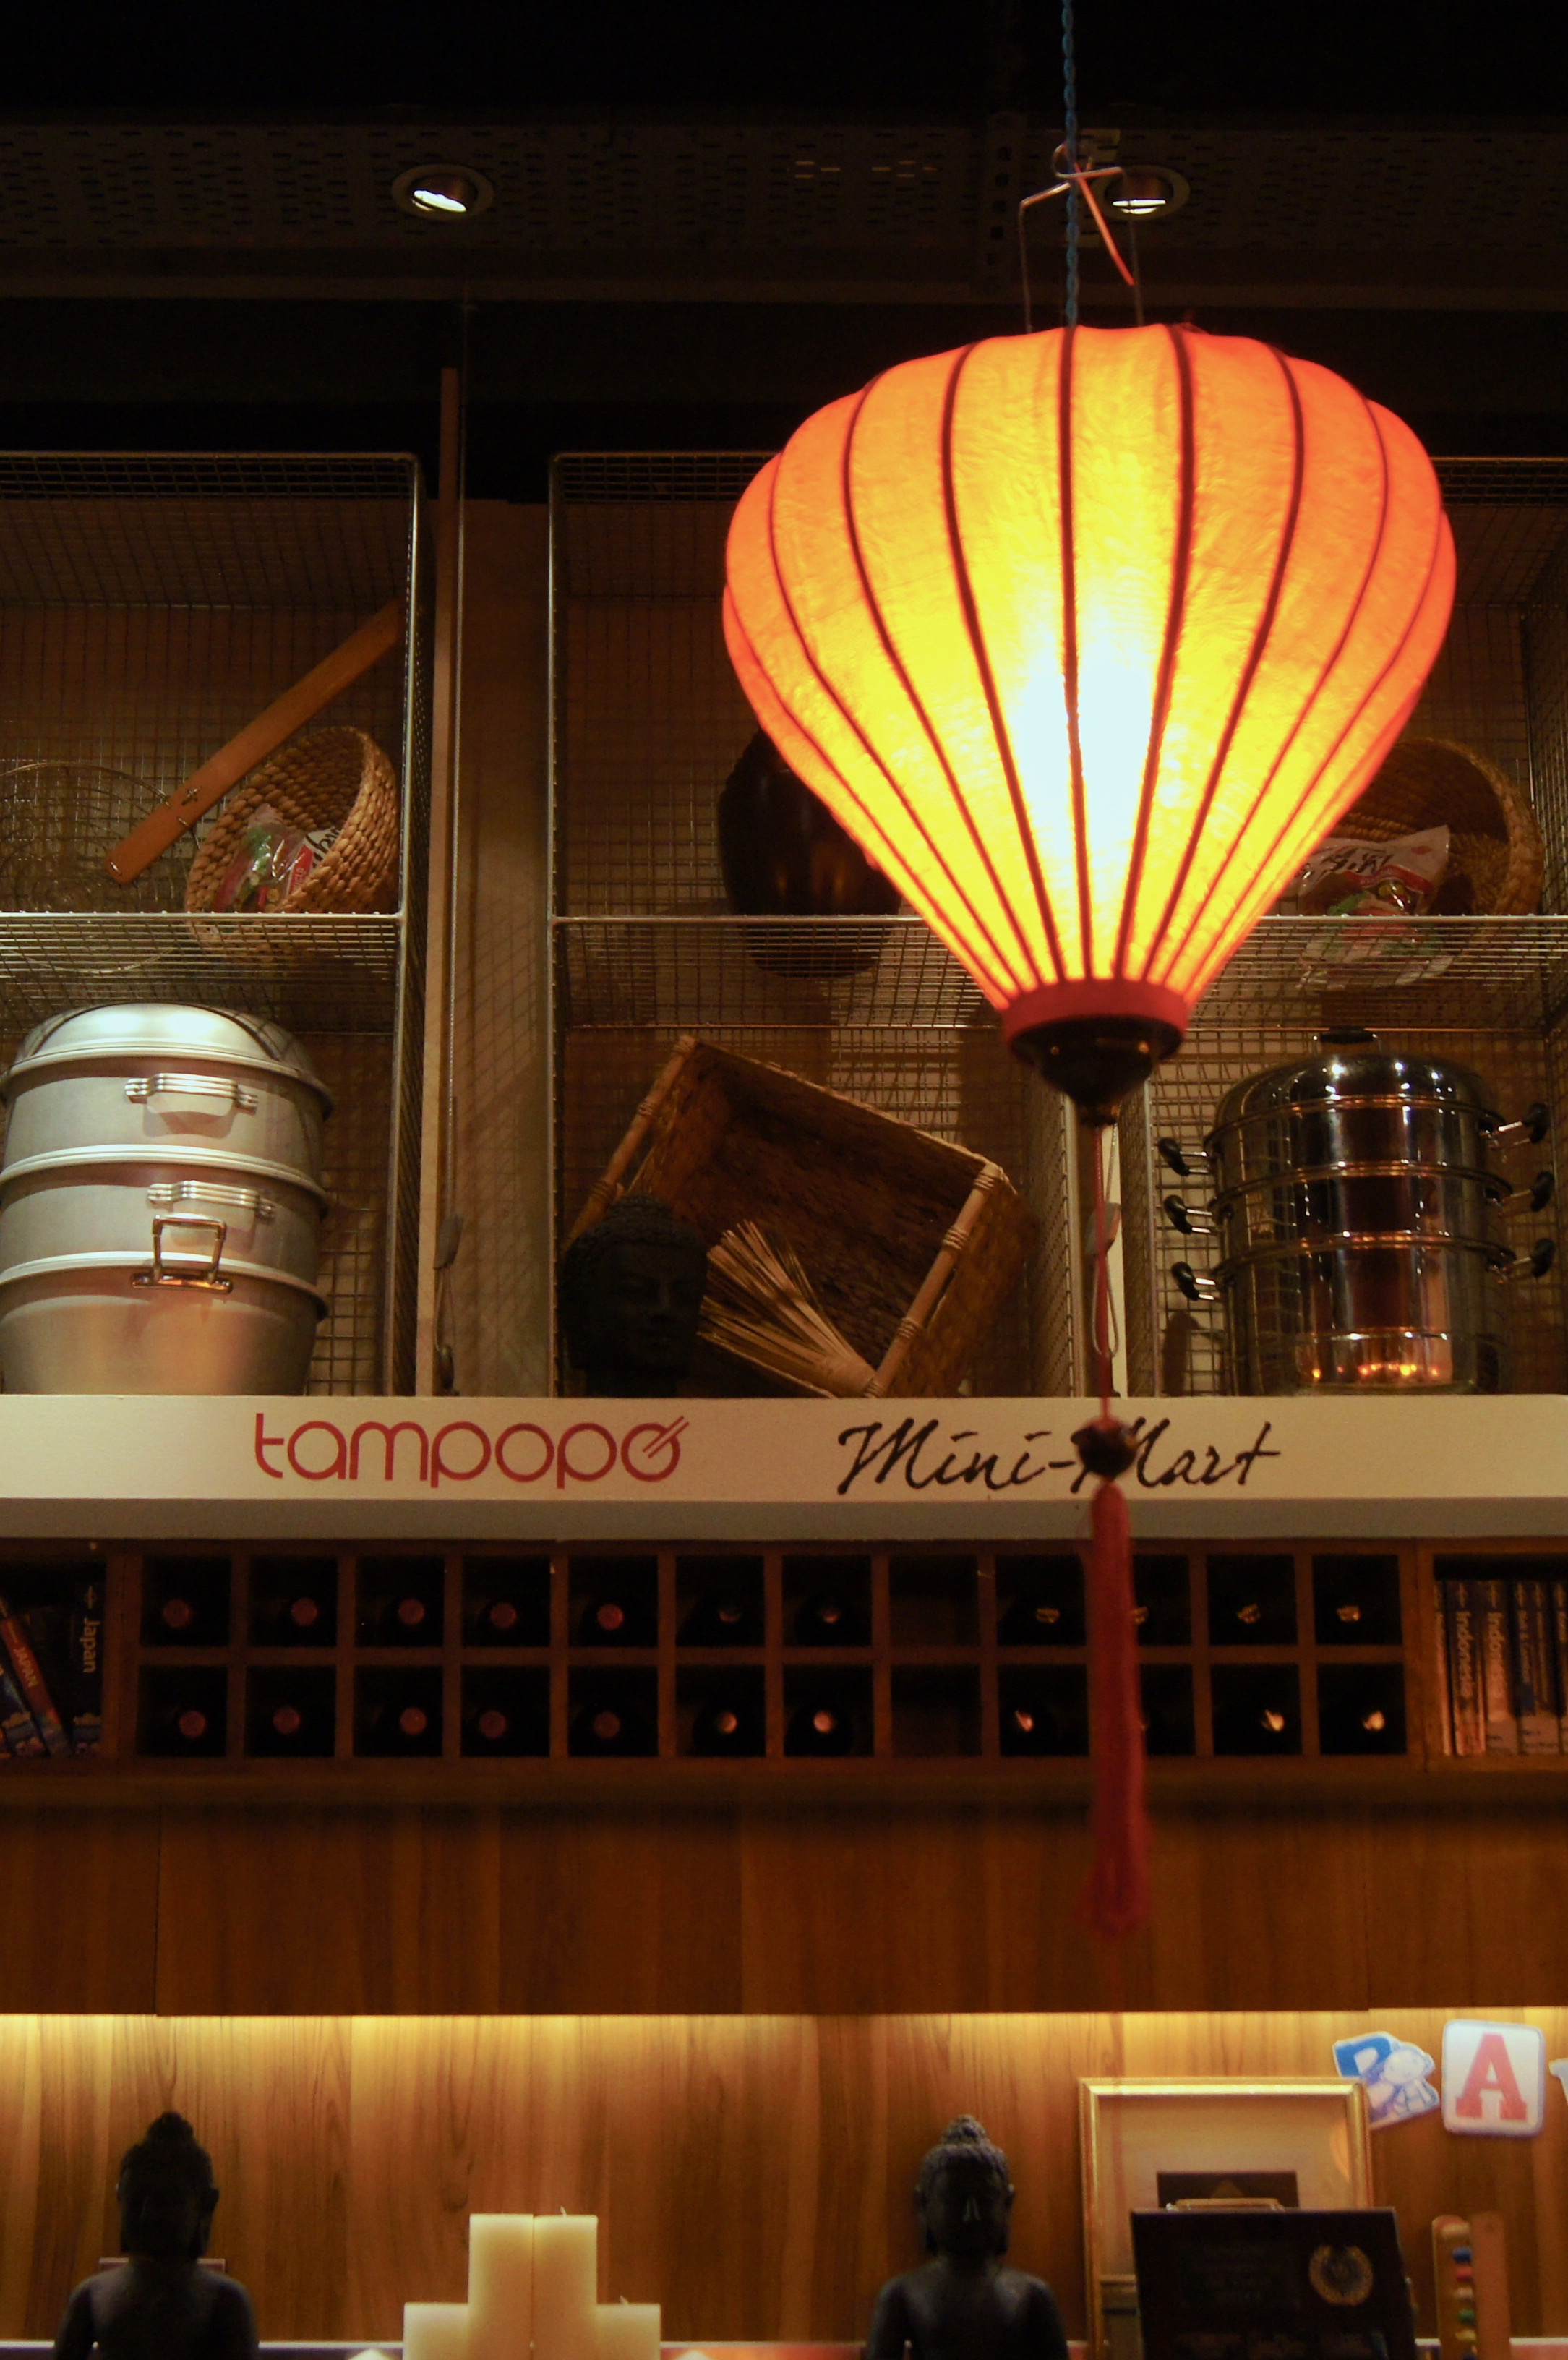 Tampopo Trafford Centre - decor